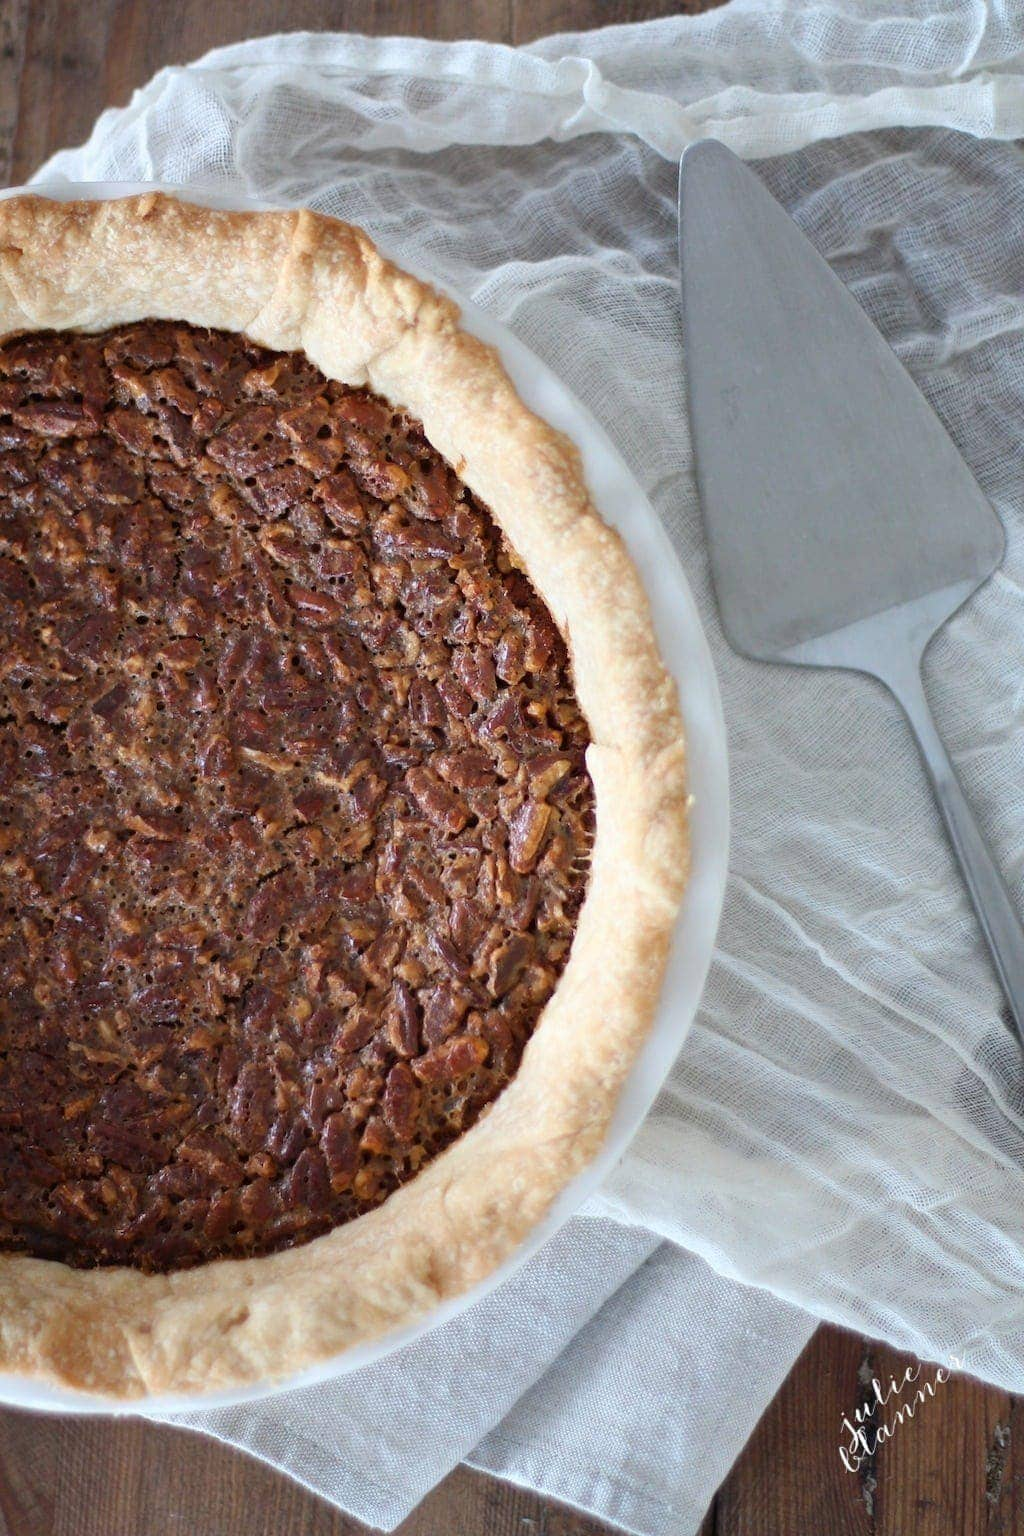 caramel pecan pie recipe in white pie dish with silver serving utensil on white towel